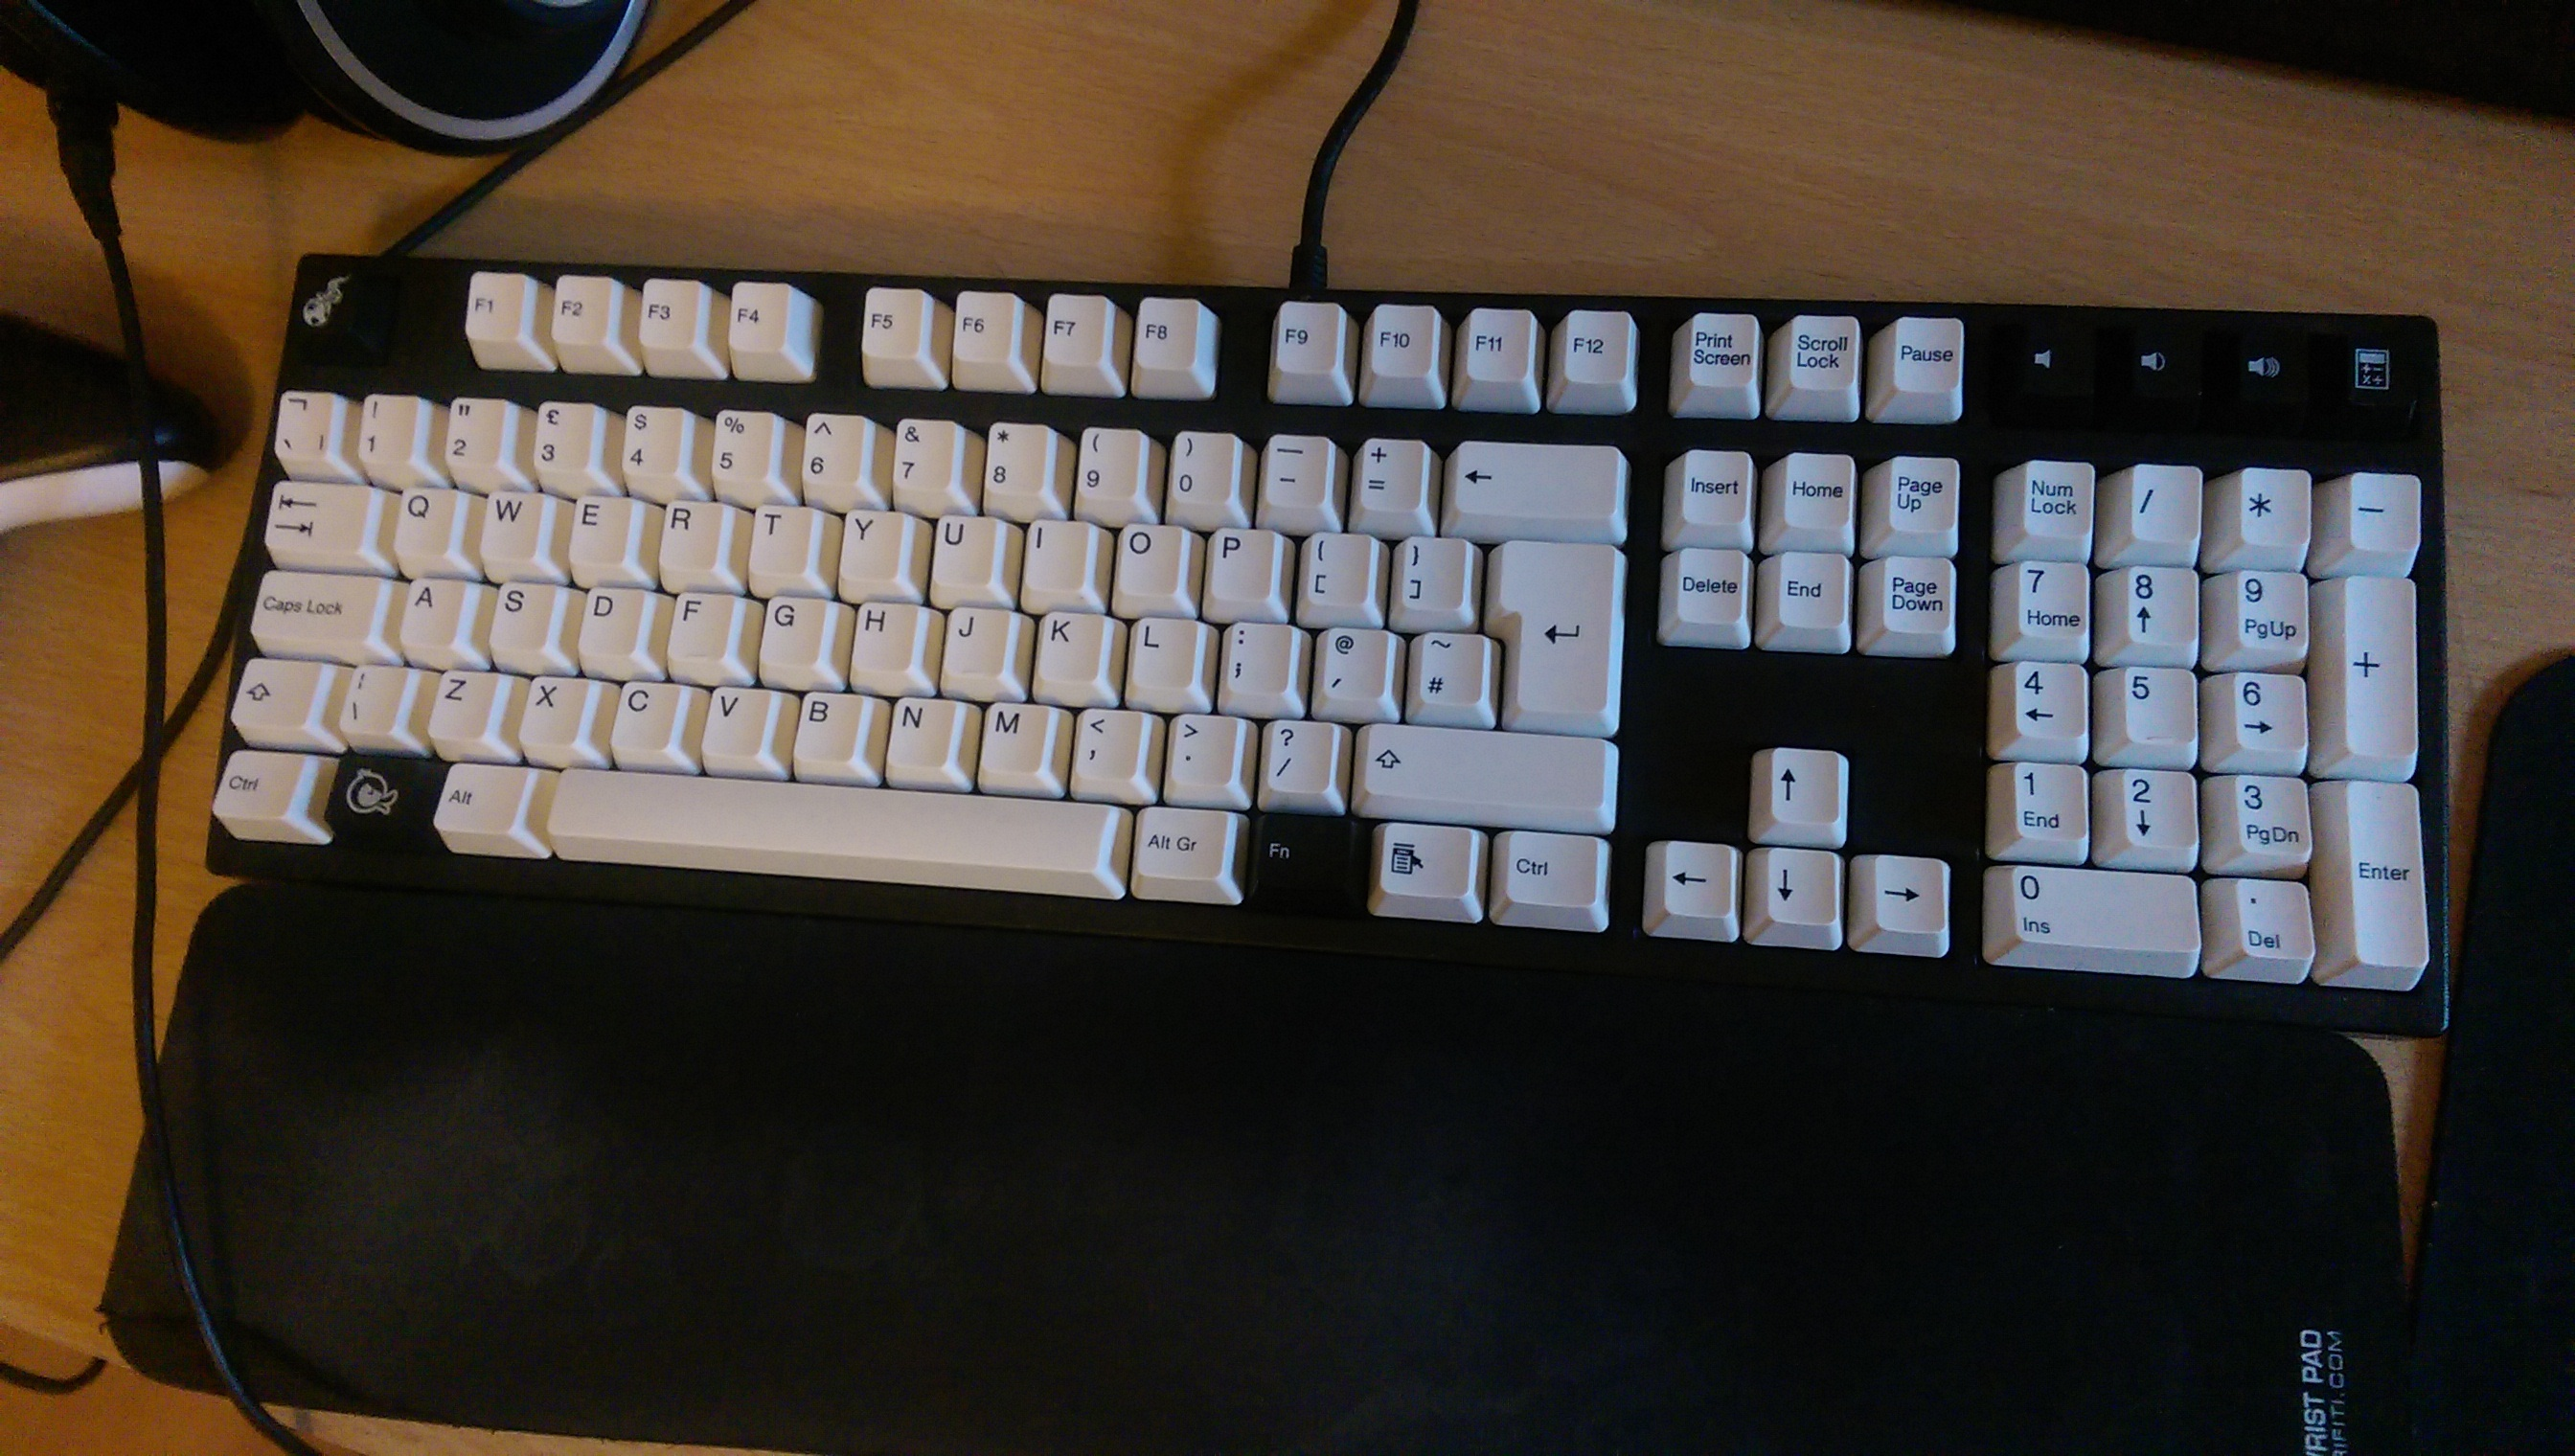 Show us your keyboards! 2015 Edition - Other Hardware